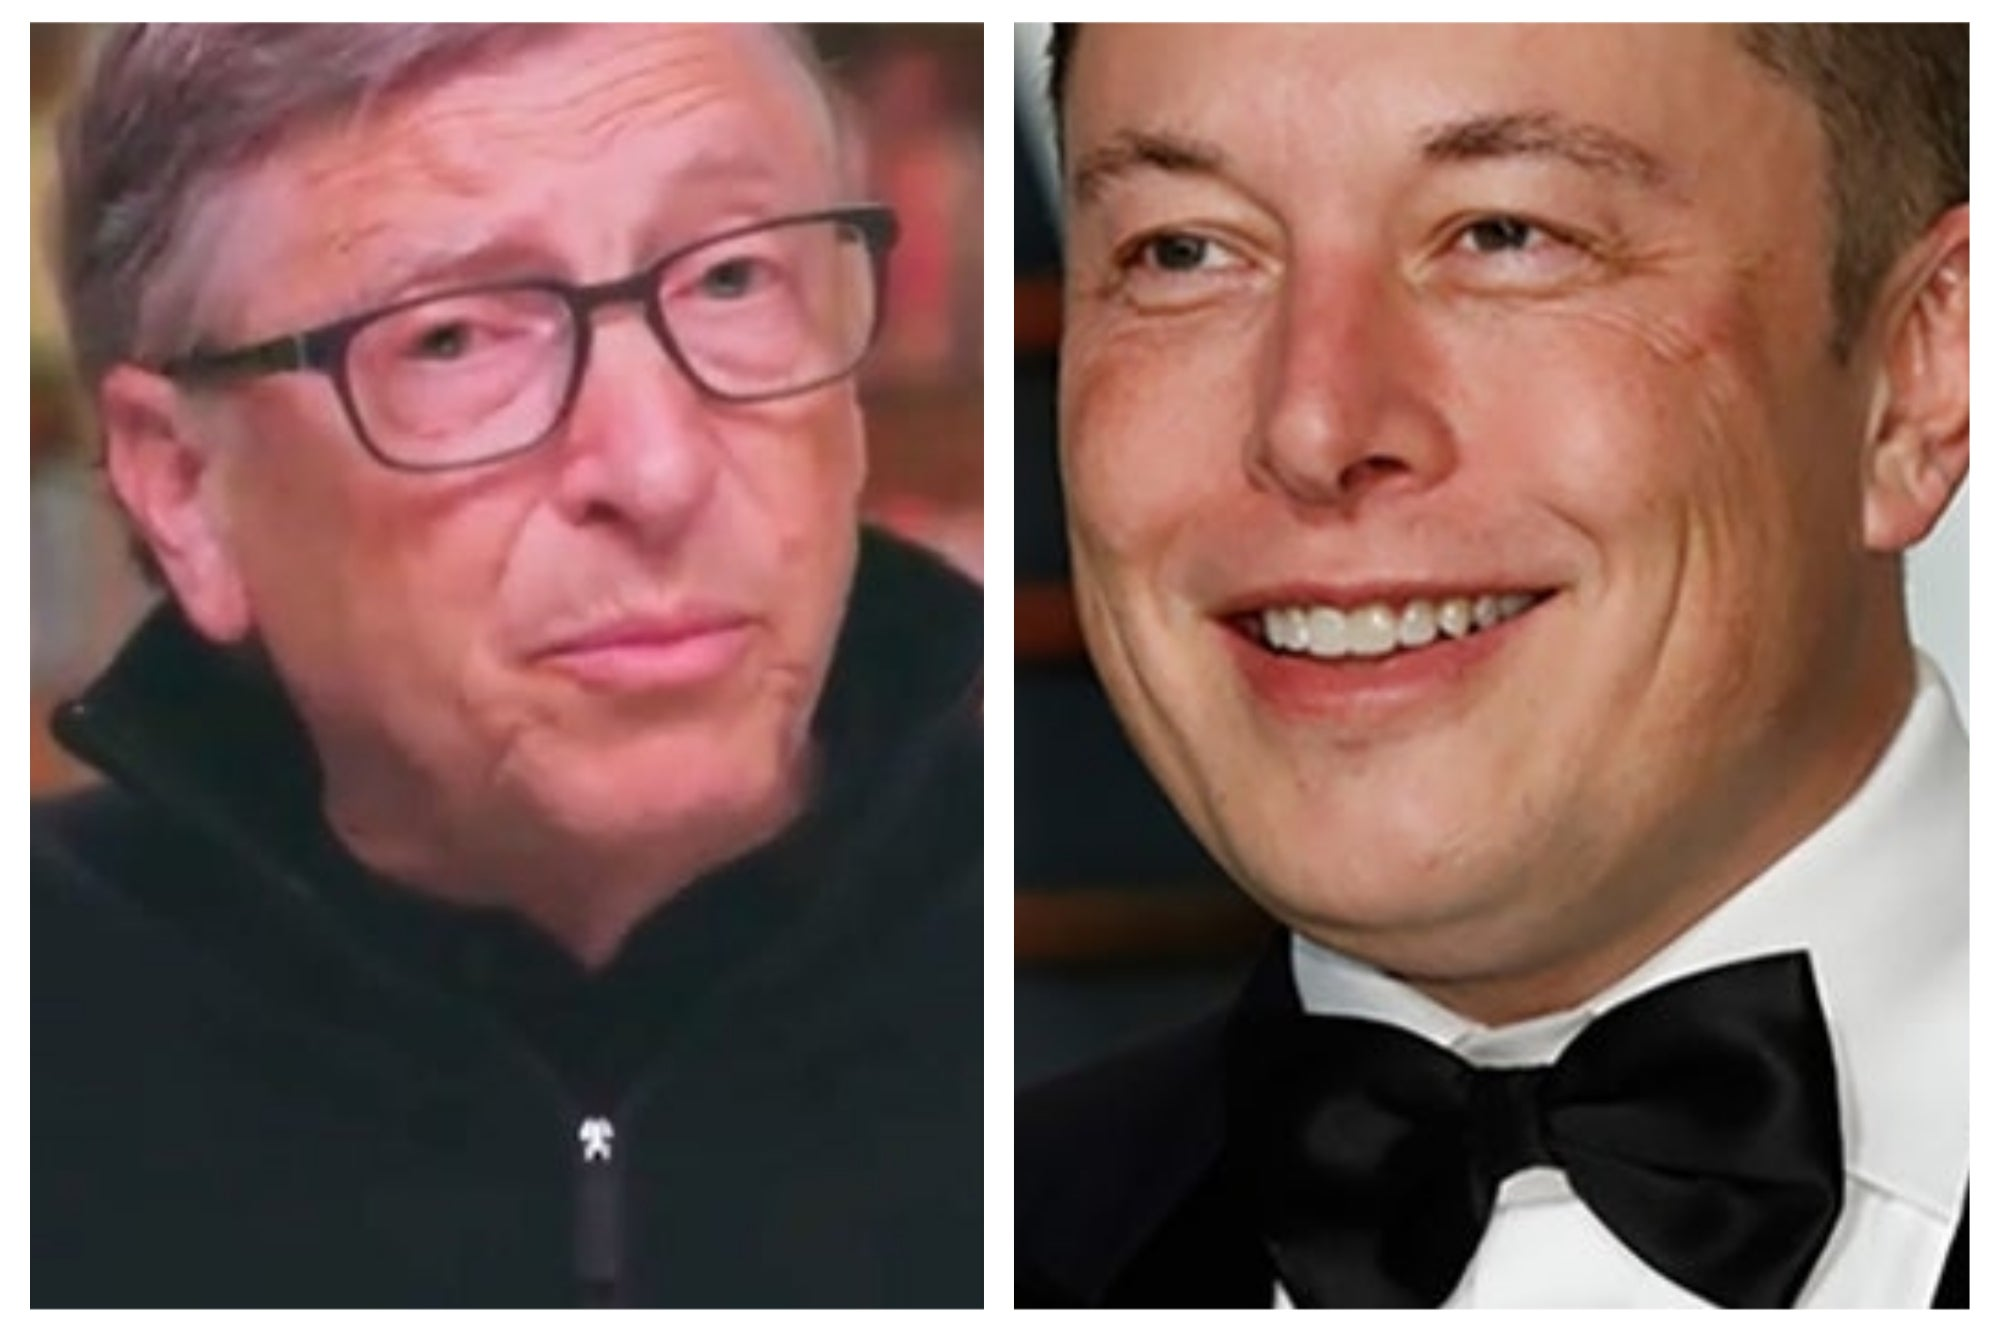 Elon Musk takes his place from Bill Gates: He is already the second richest man in the world